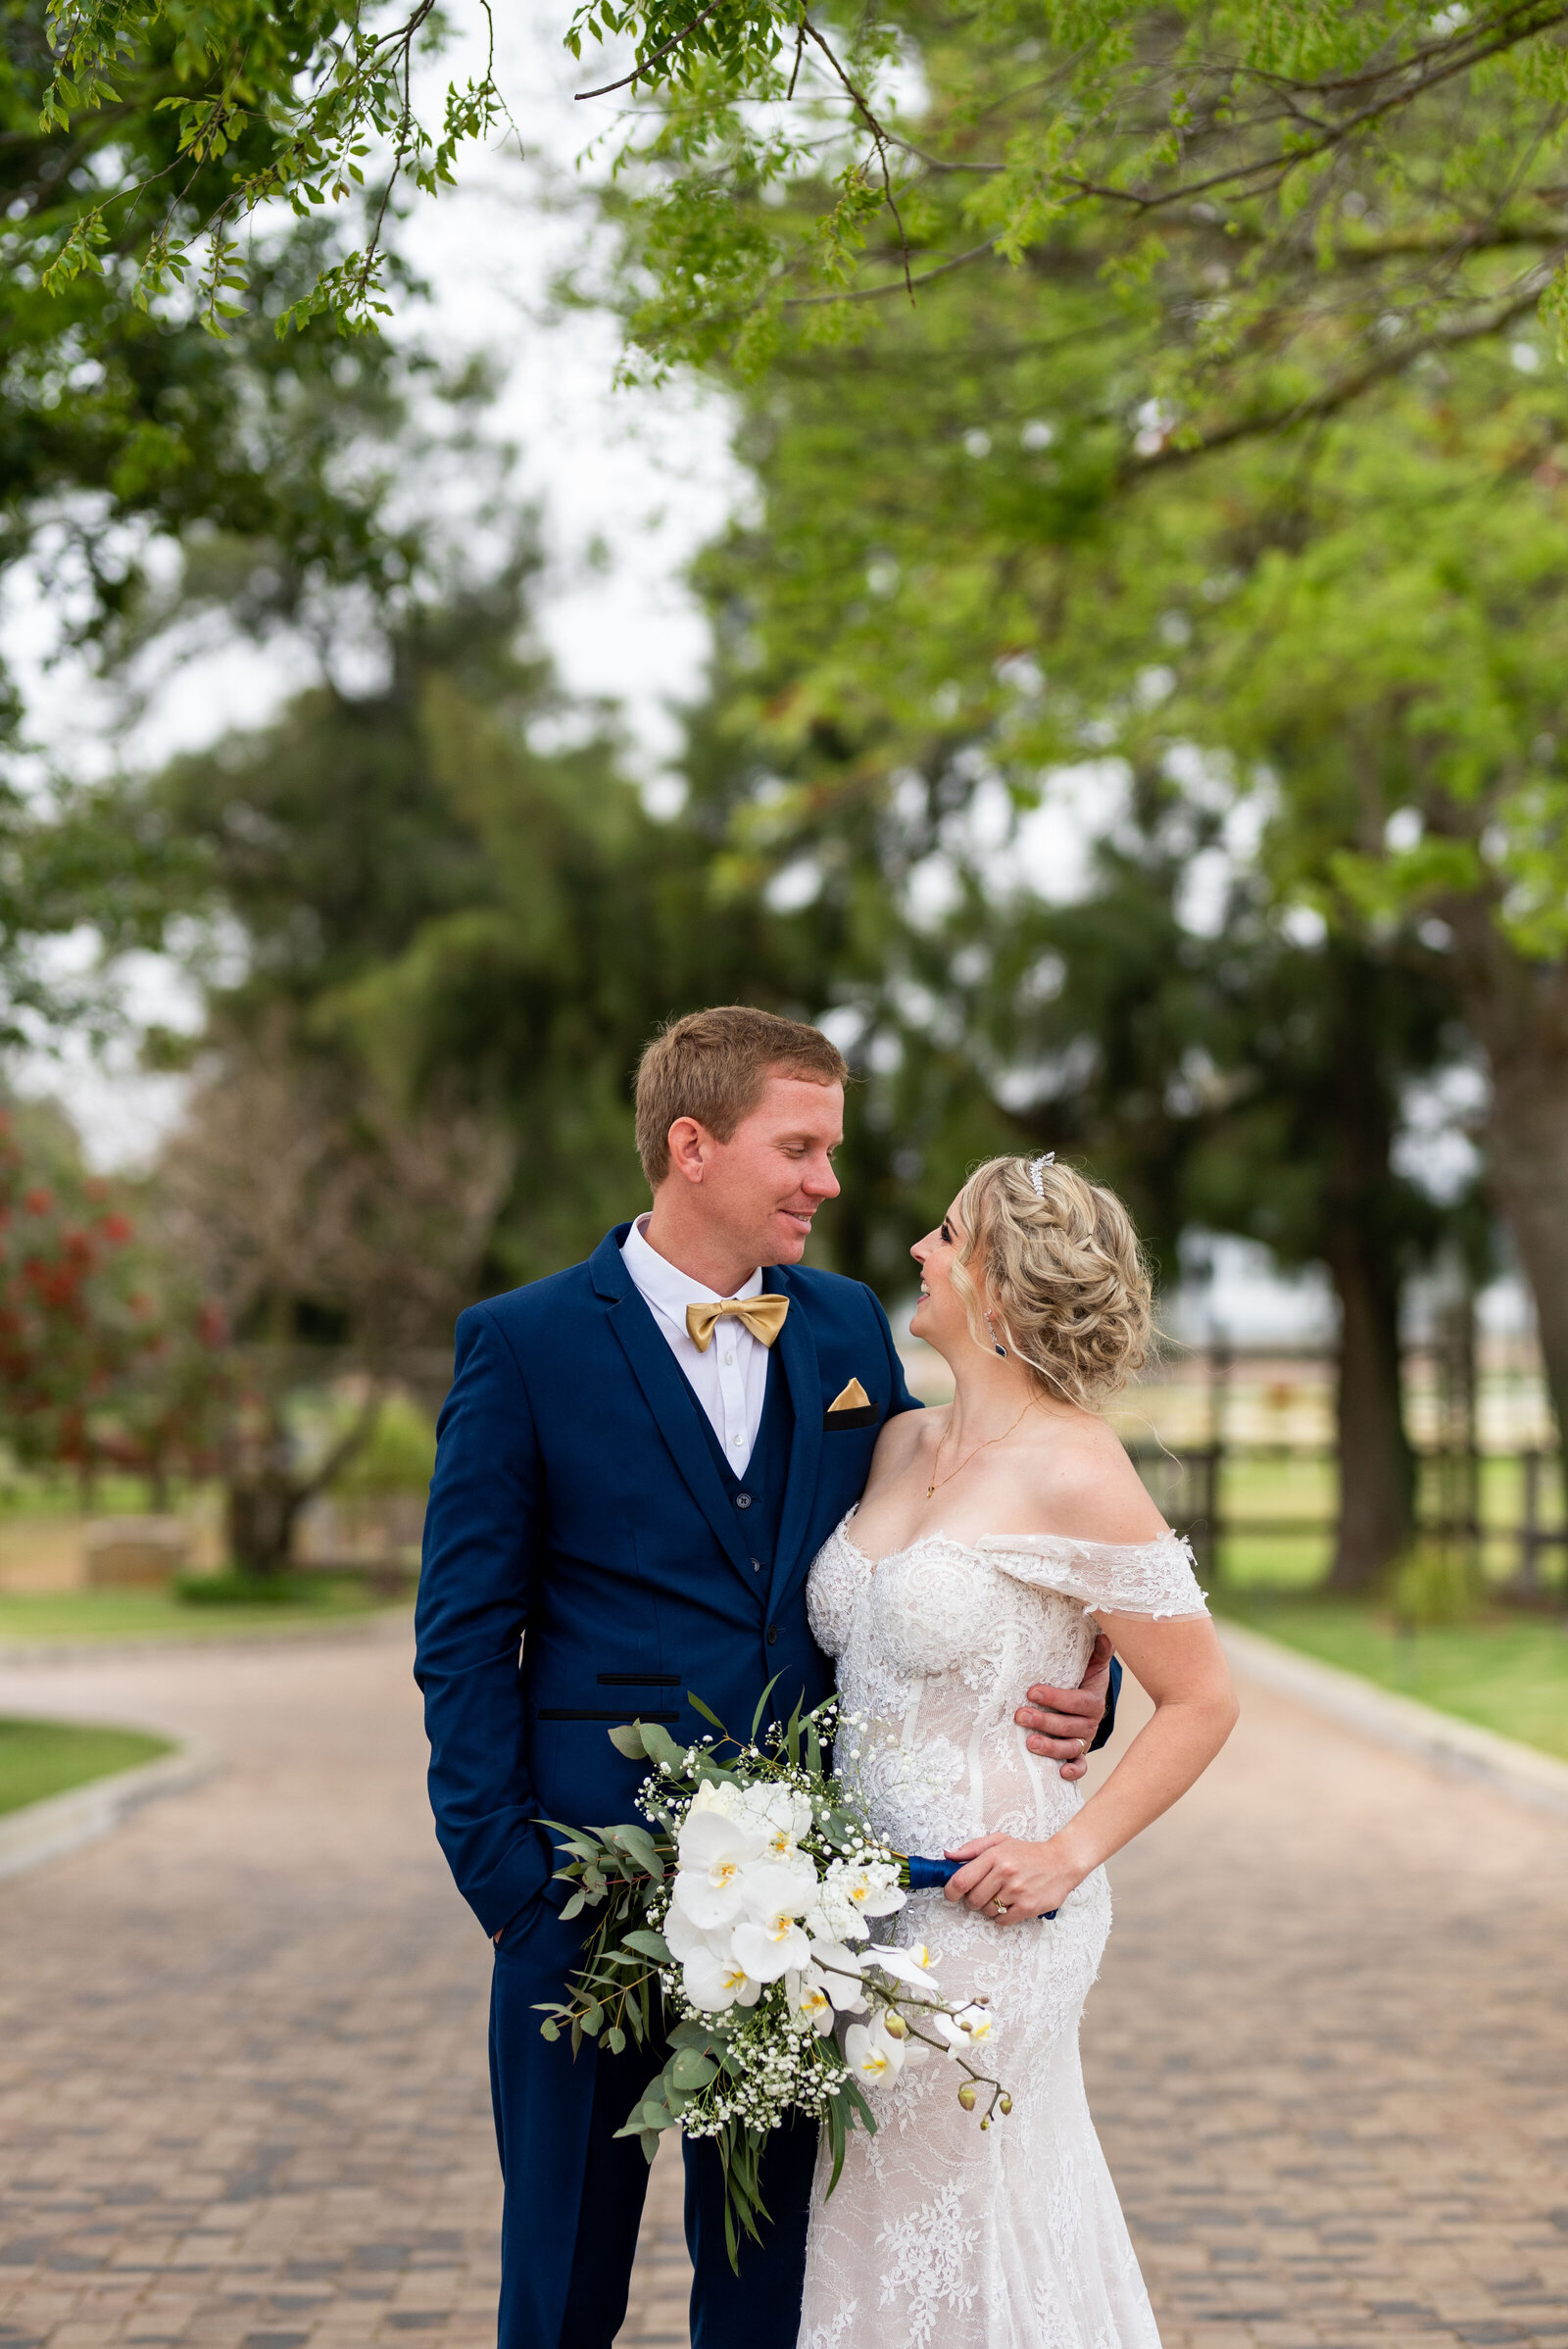 Wedding Photographer + Cape Town venue +Elri Photography+ Weddingdress (31)